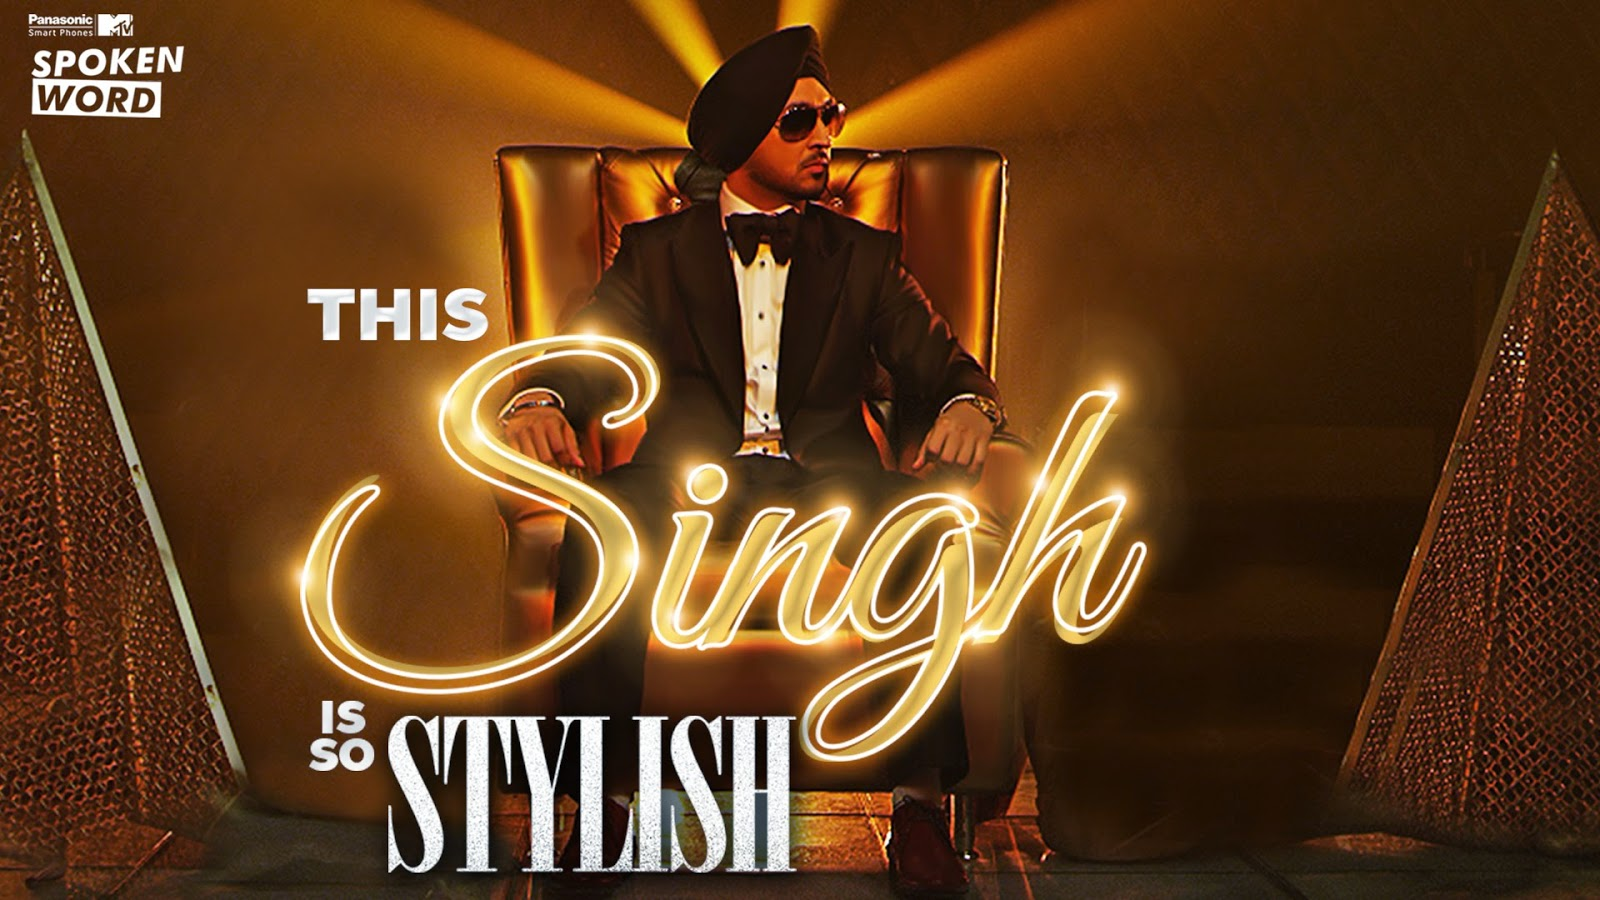 Singh this is so stylish song downlod exclusive photo